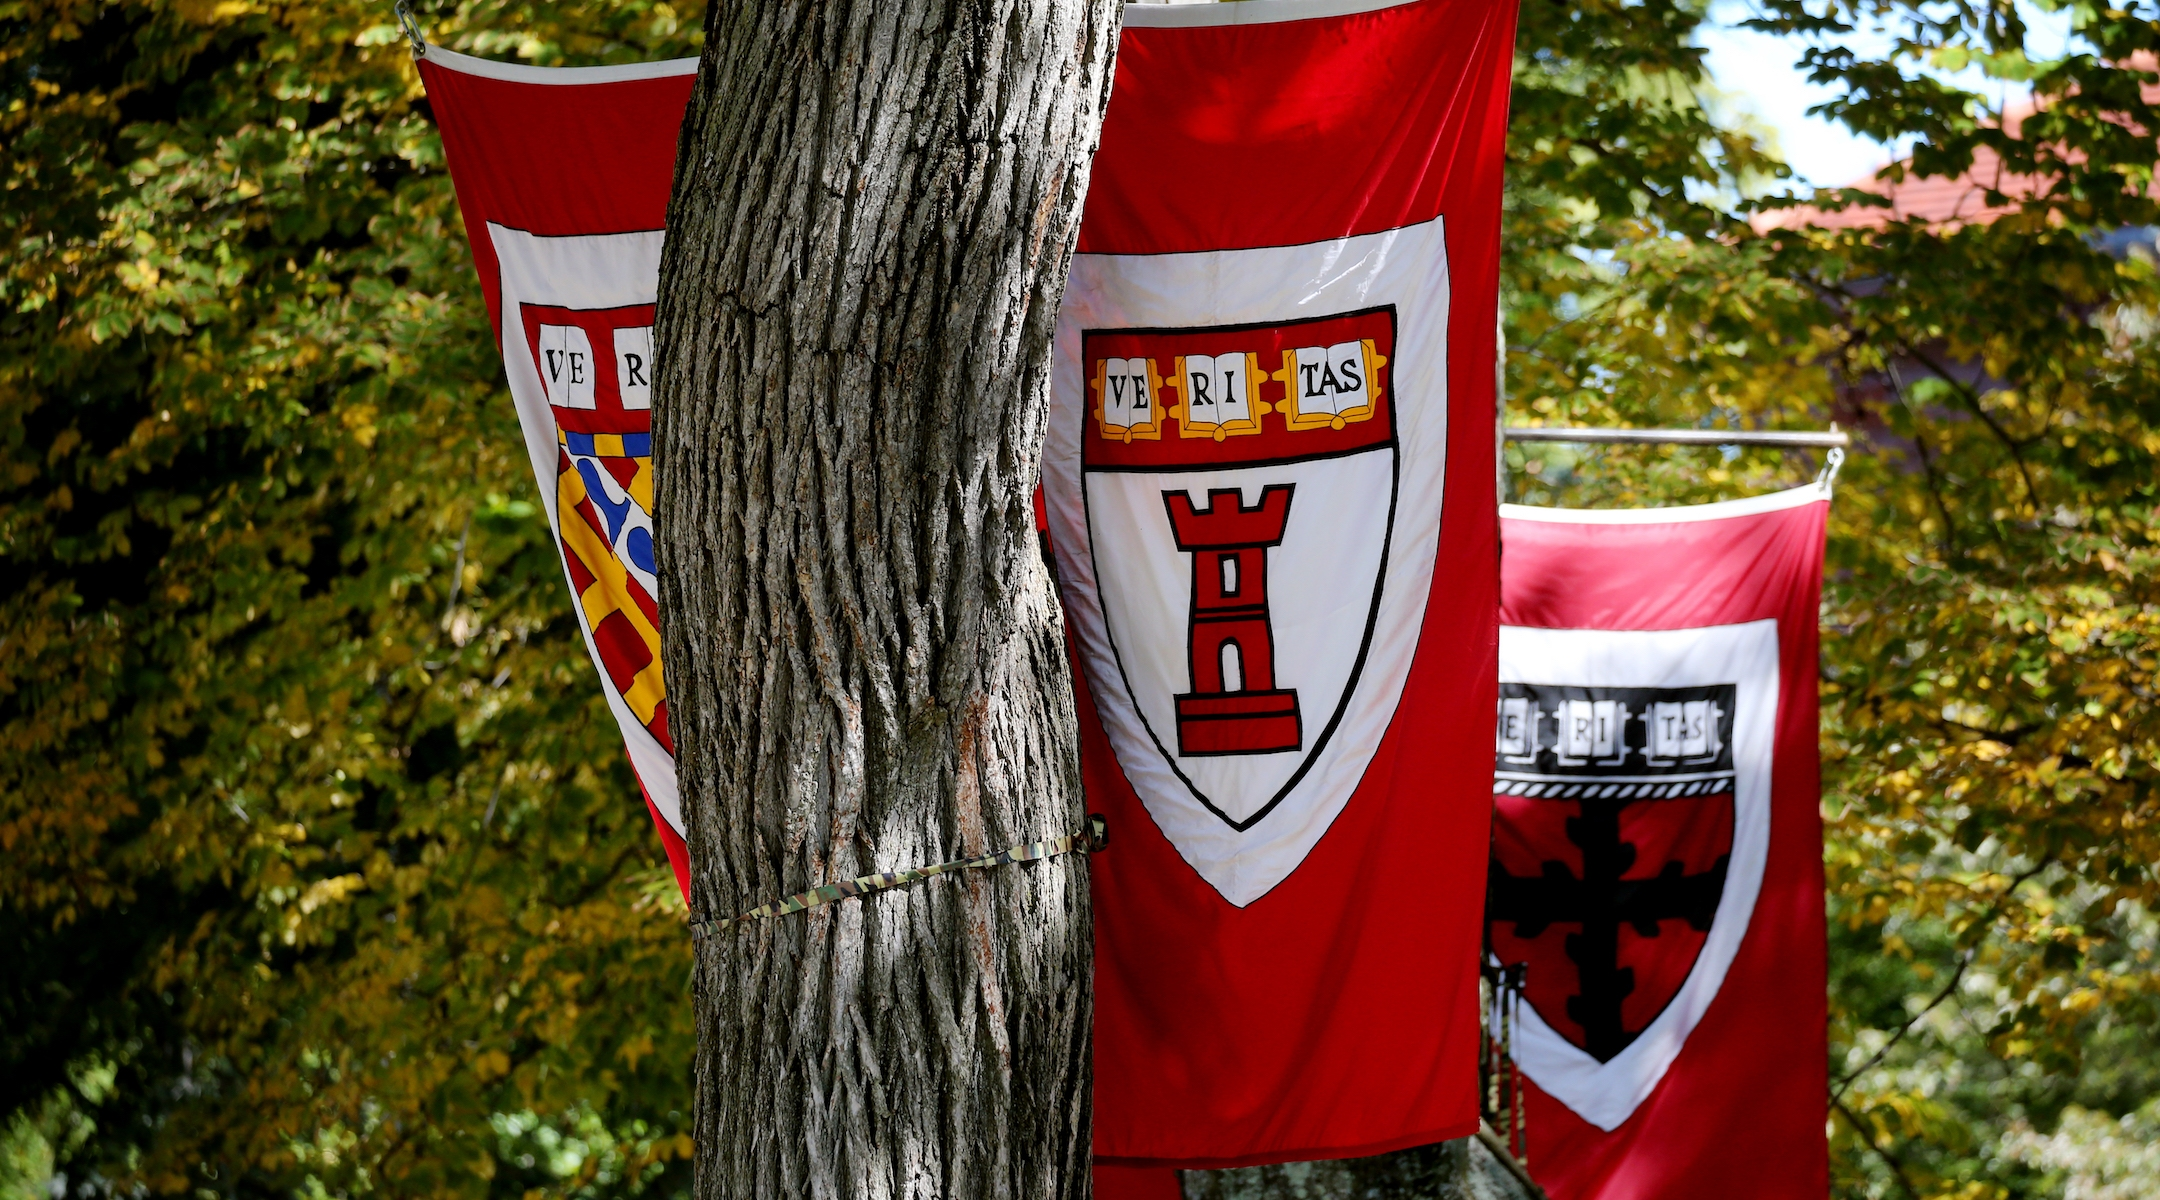 Harvard dropped a Jewish pro-gun Parkland student over past racist comments. Was it justifed?